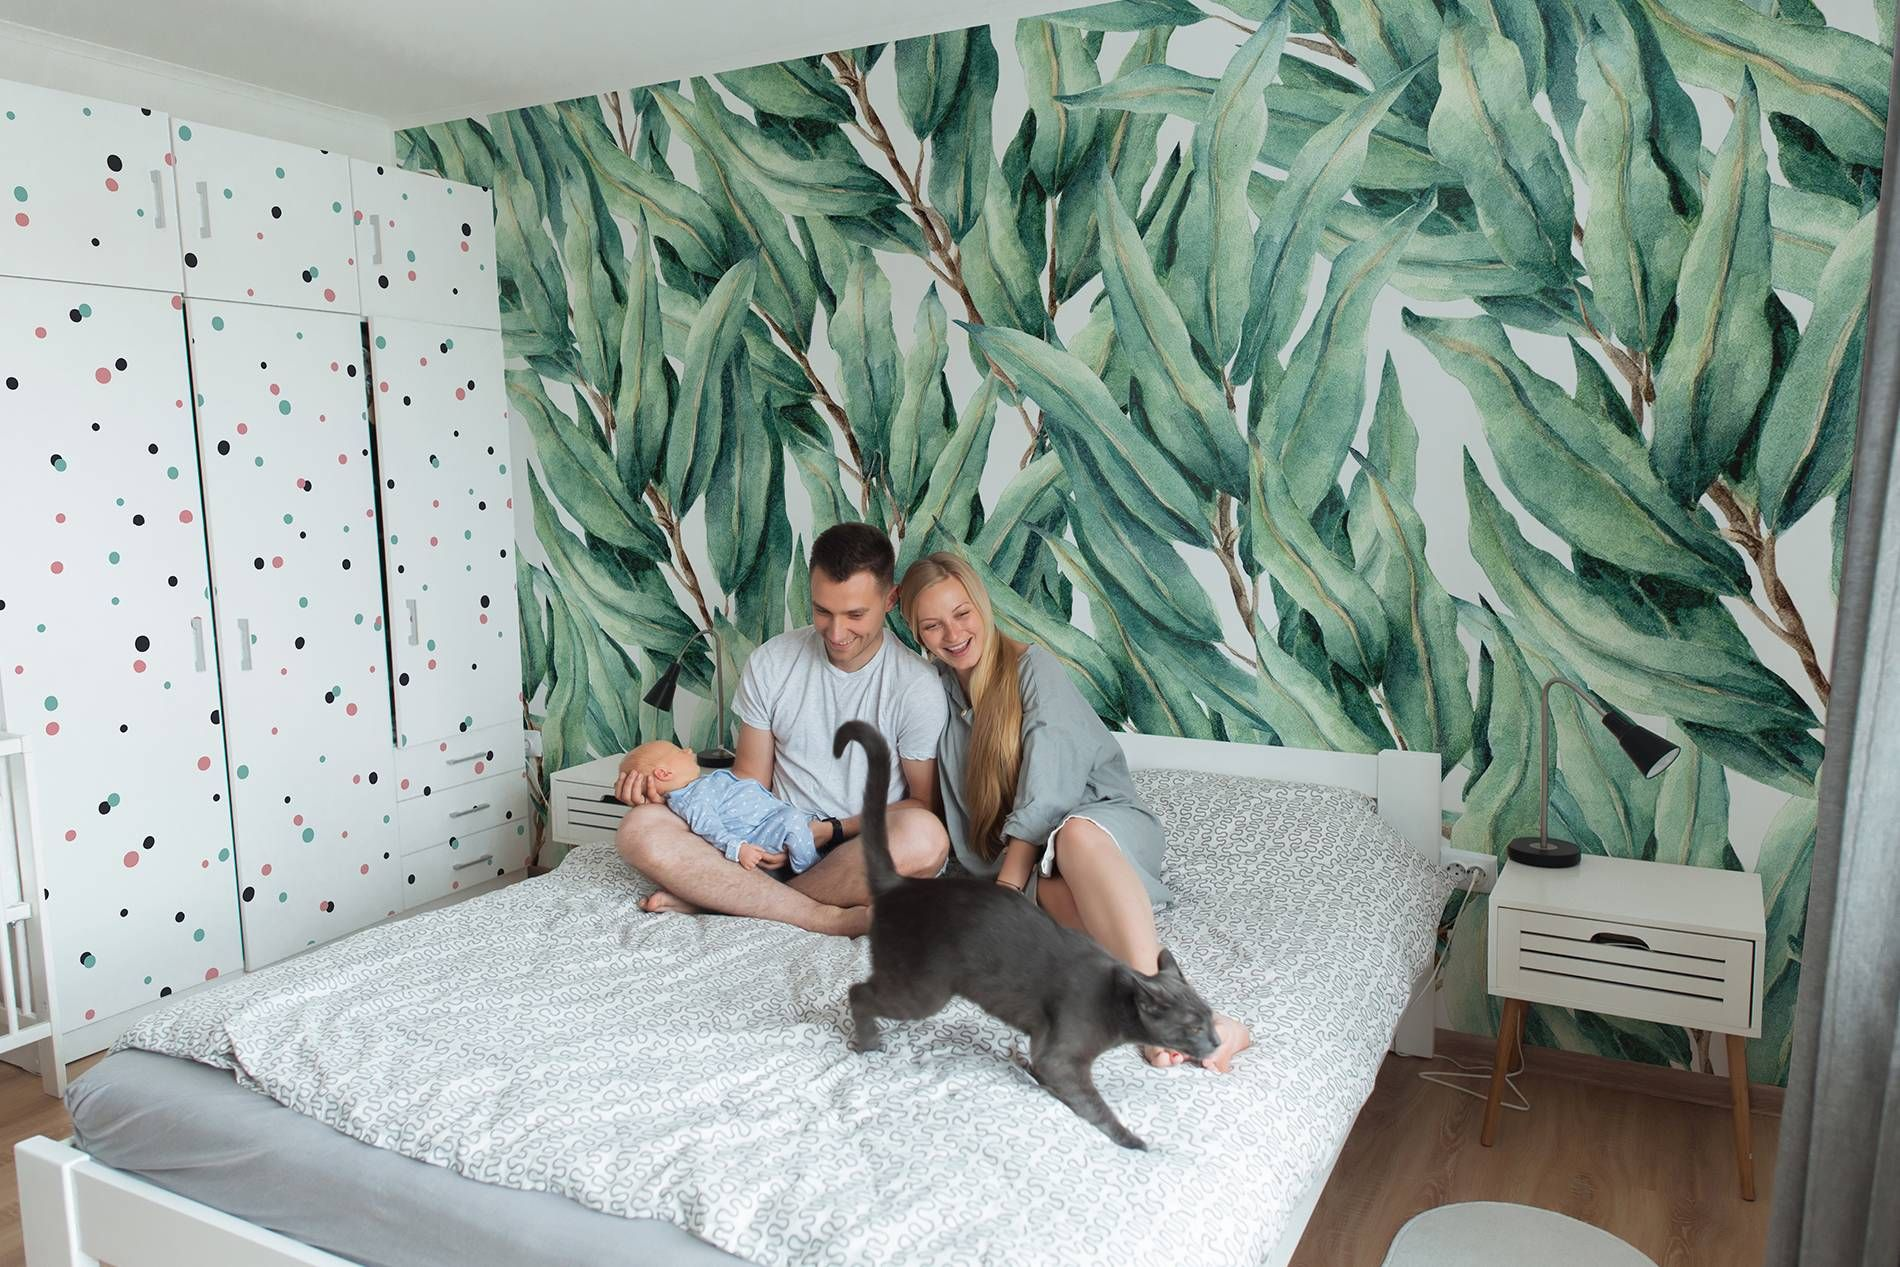 Bedroom in leaves • ✓ 365 Day Money Back Guarantee ✓ Consulting on the Pattern Selection ✓ 100% Safe✓ Set up online!